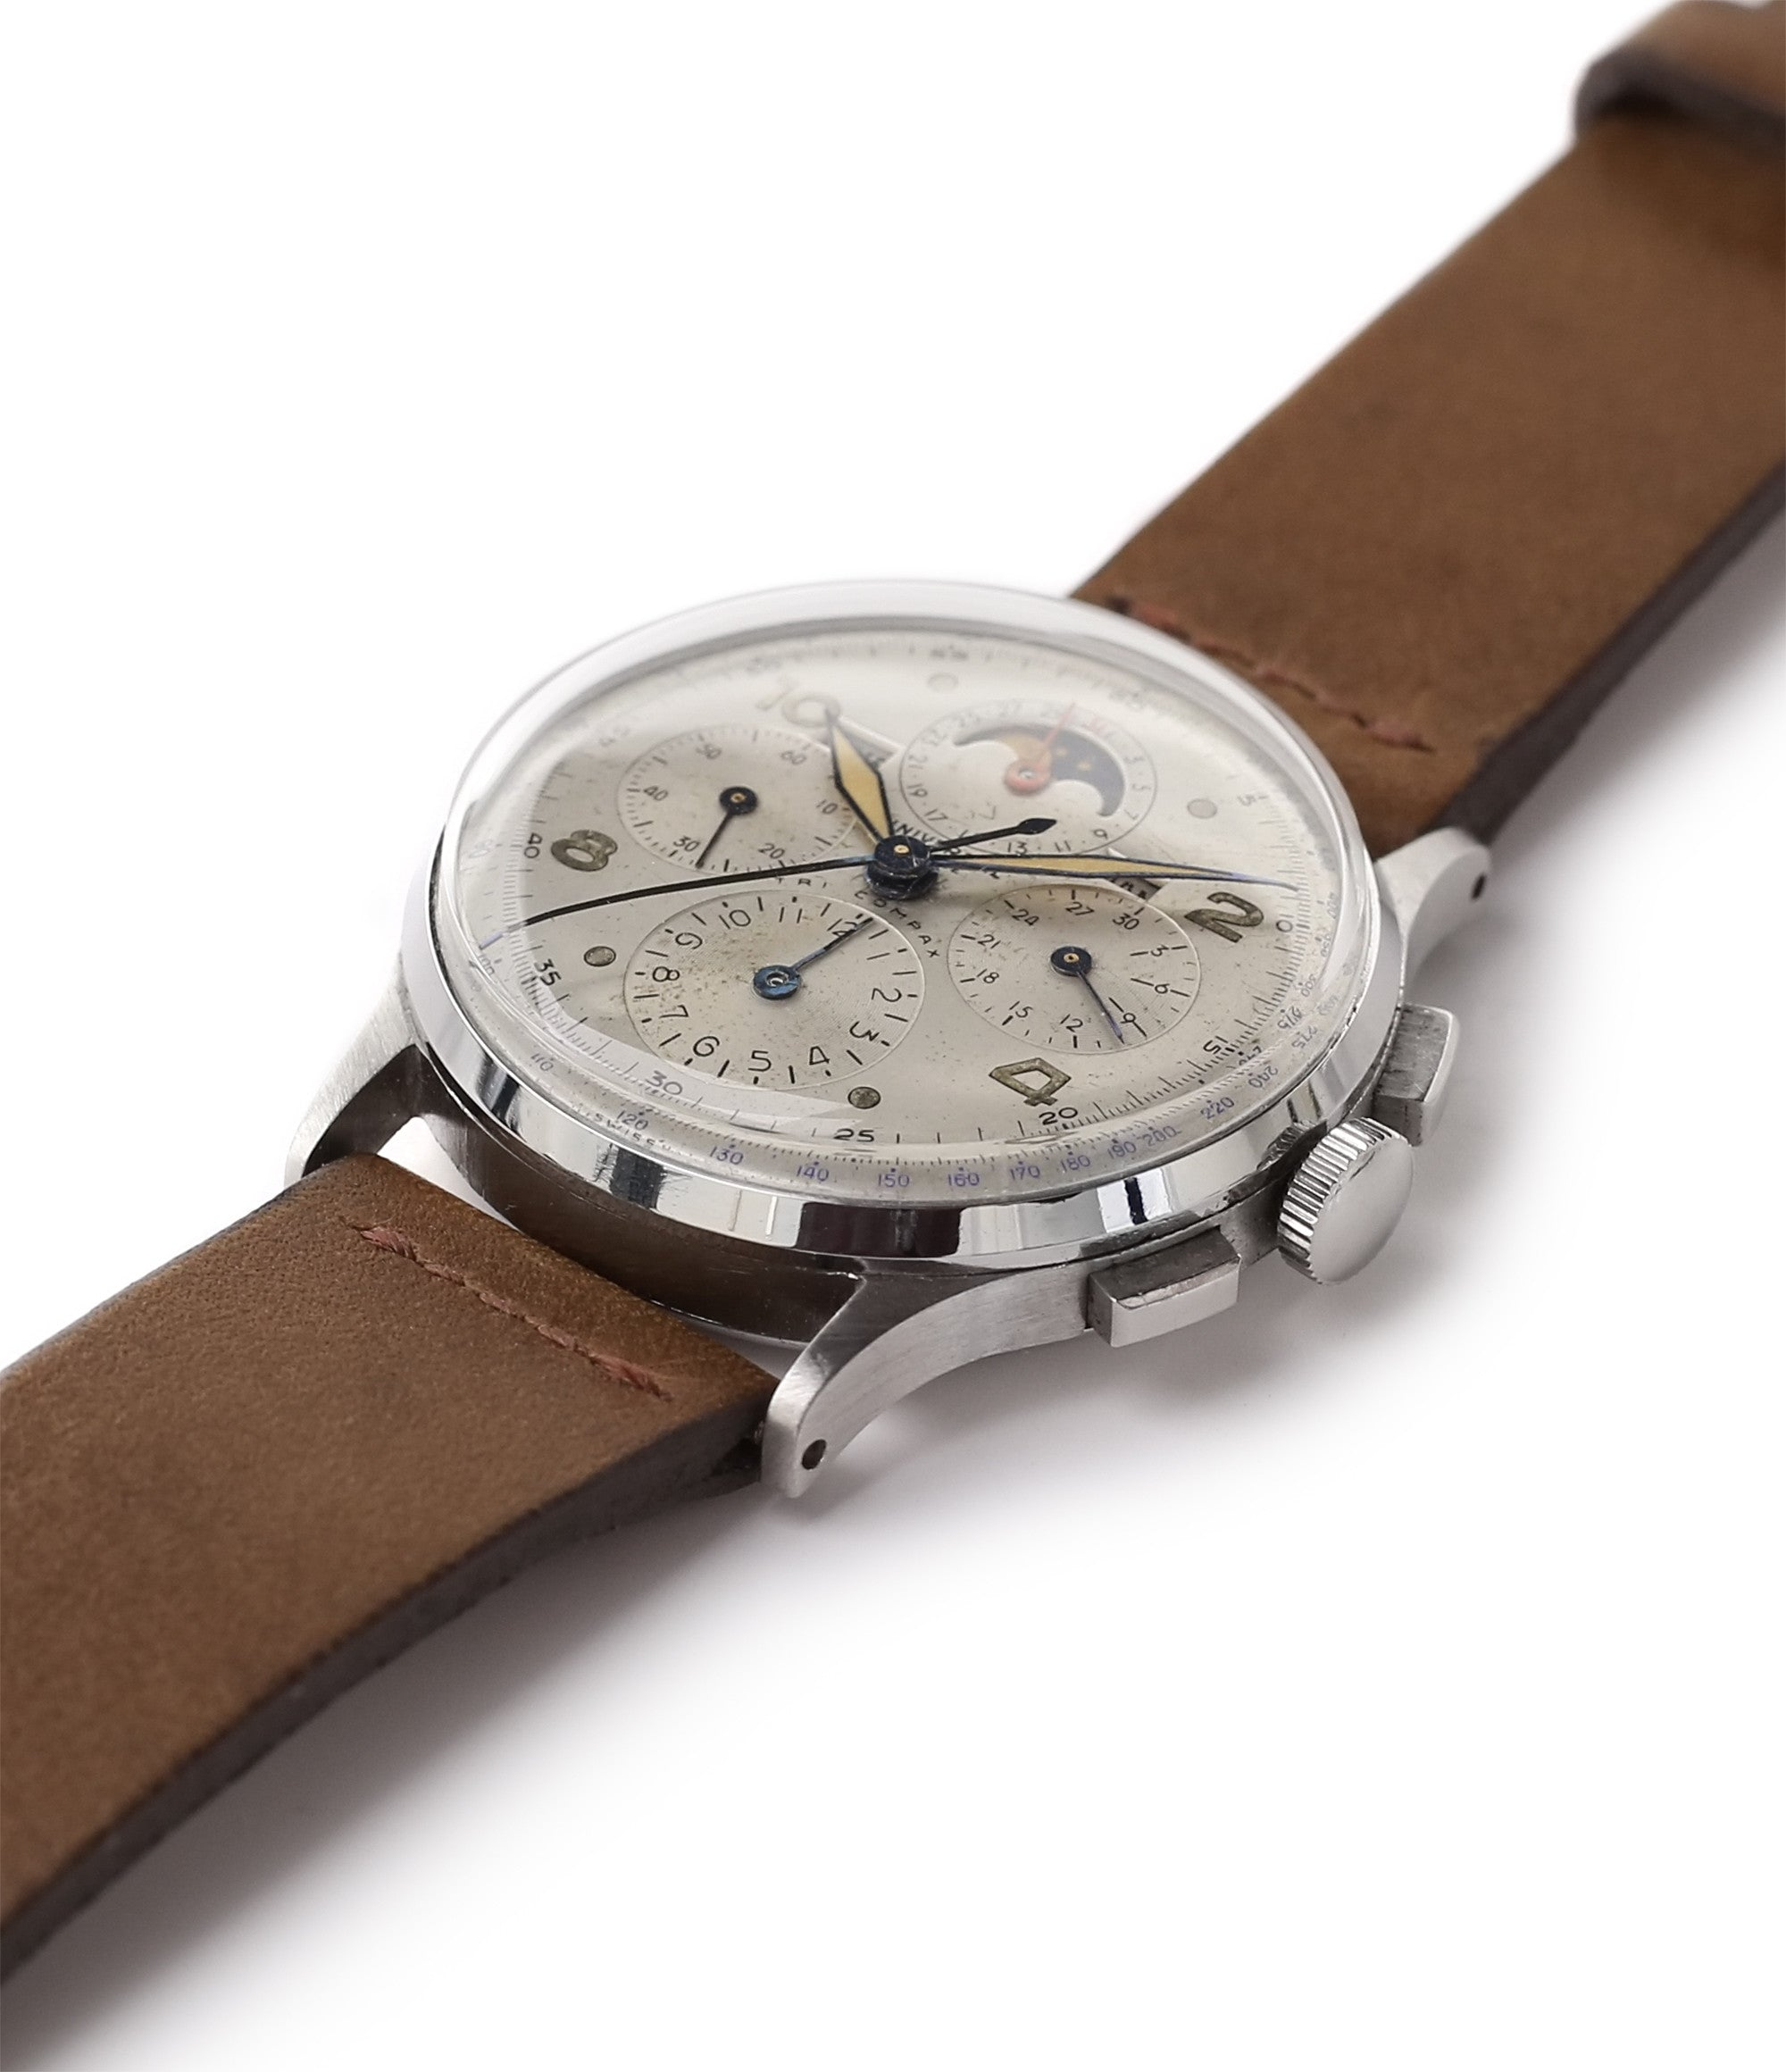 for sale Universal Geneve Tri-Compax 22279 vintage steel chronograph triple calendar watch at A Collected Man London online vintage watch specialist